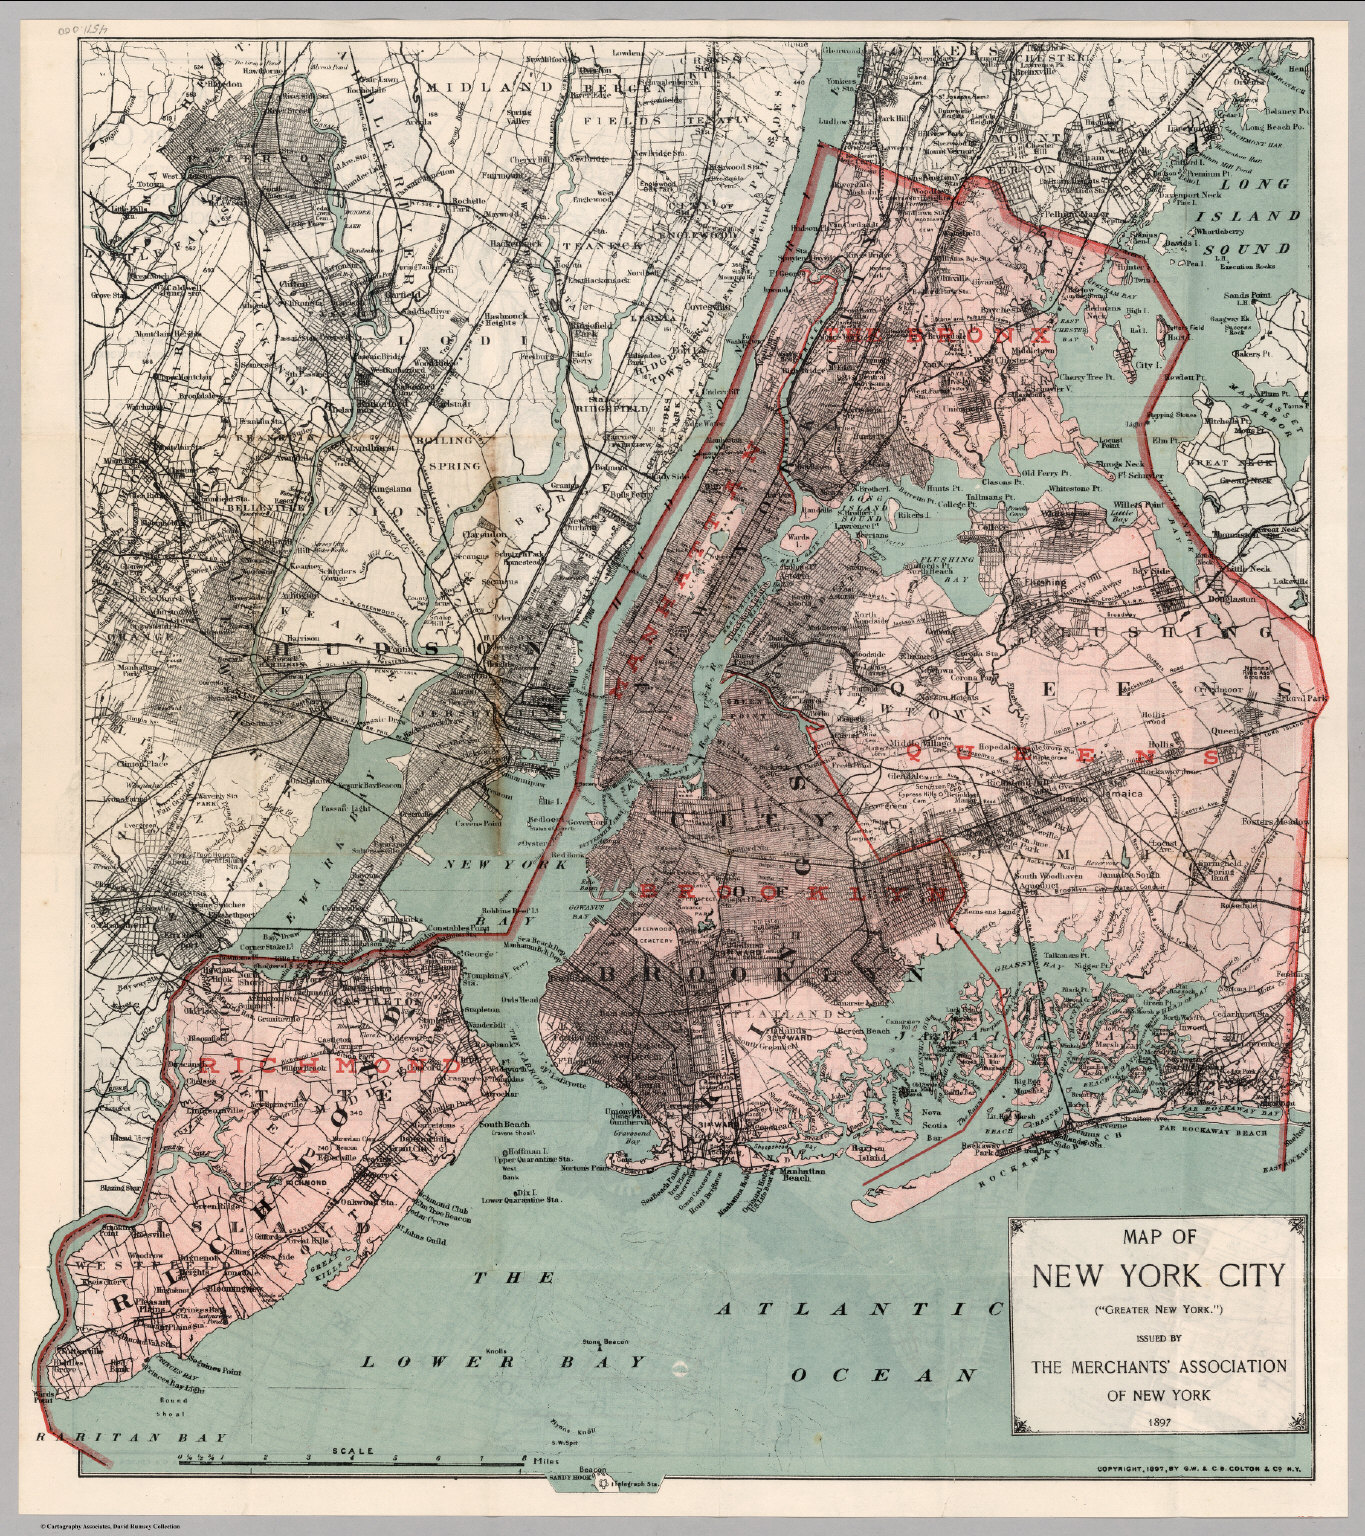 Show Me The Map Of New York.A Map Of The Greater New York Issued By The Merchants Association